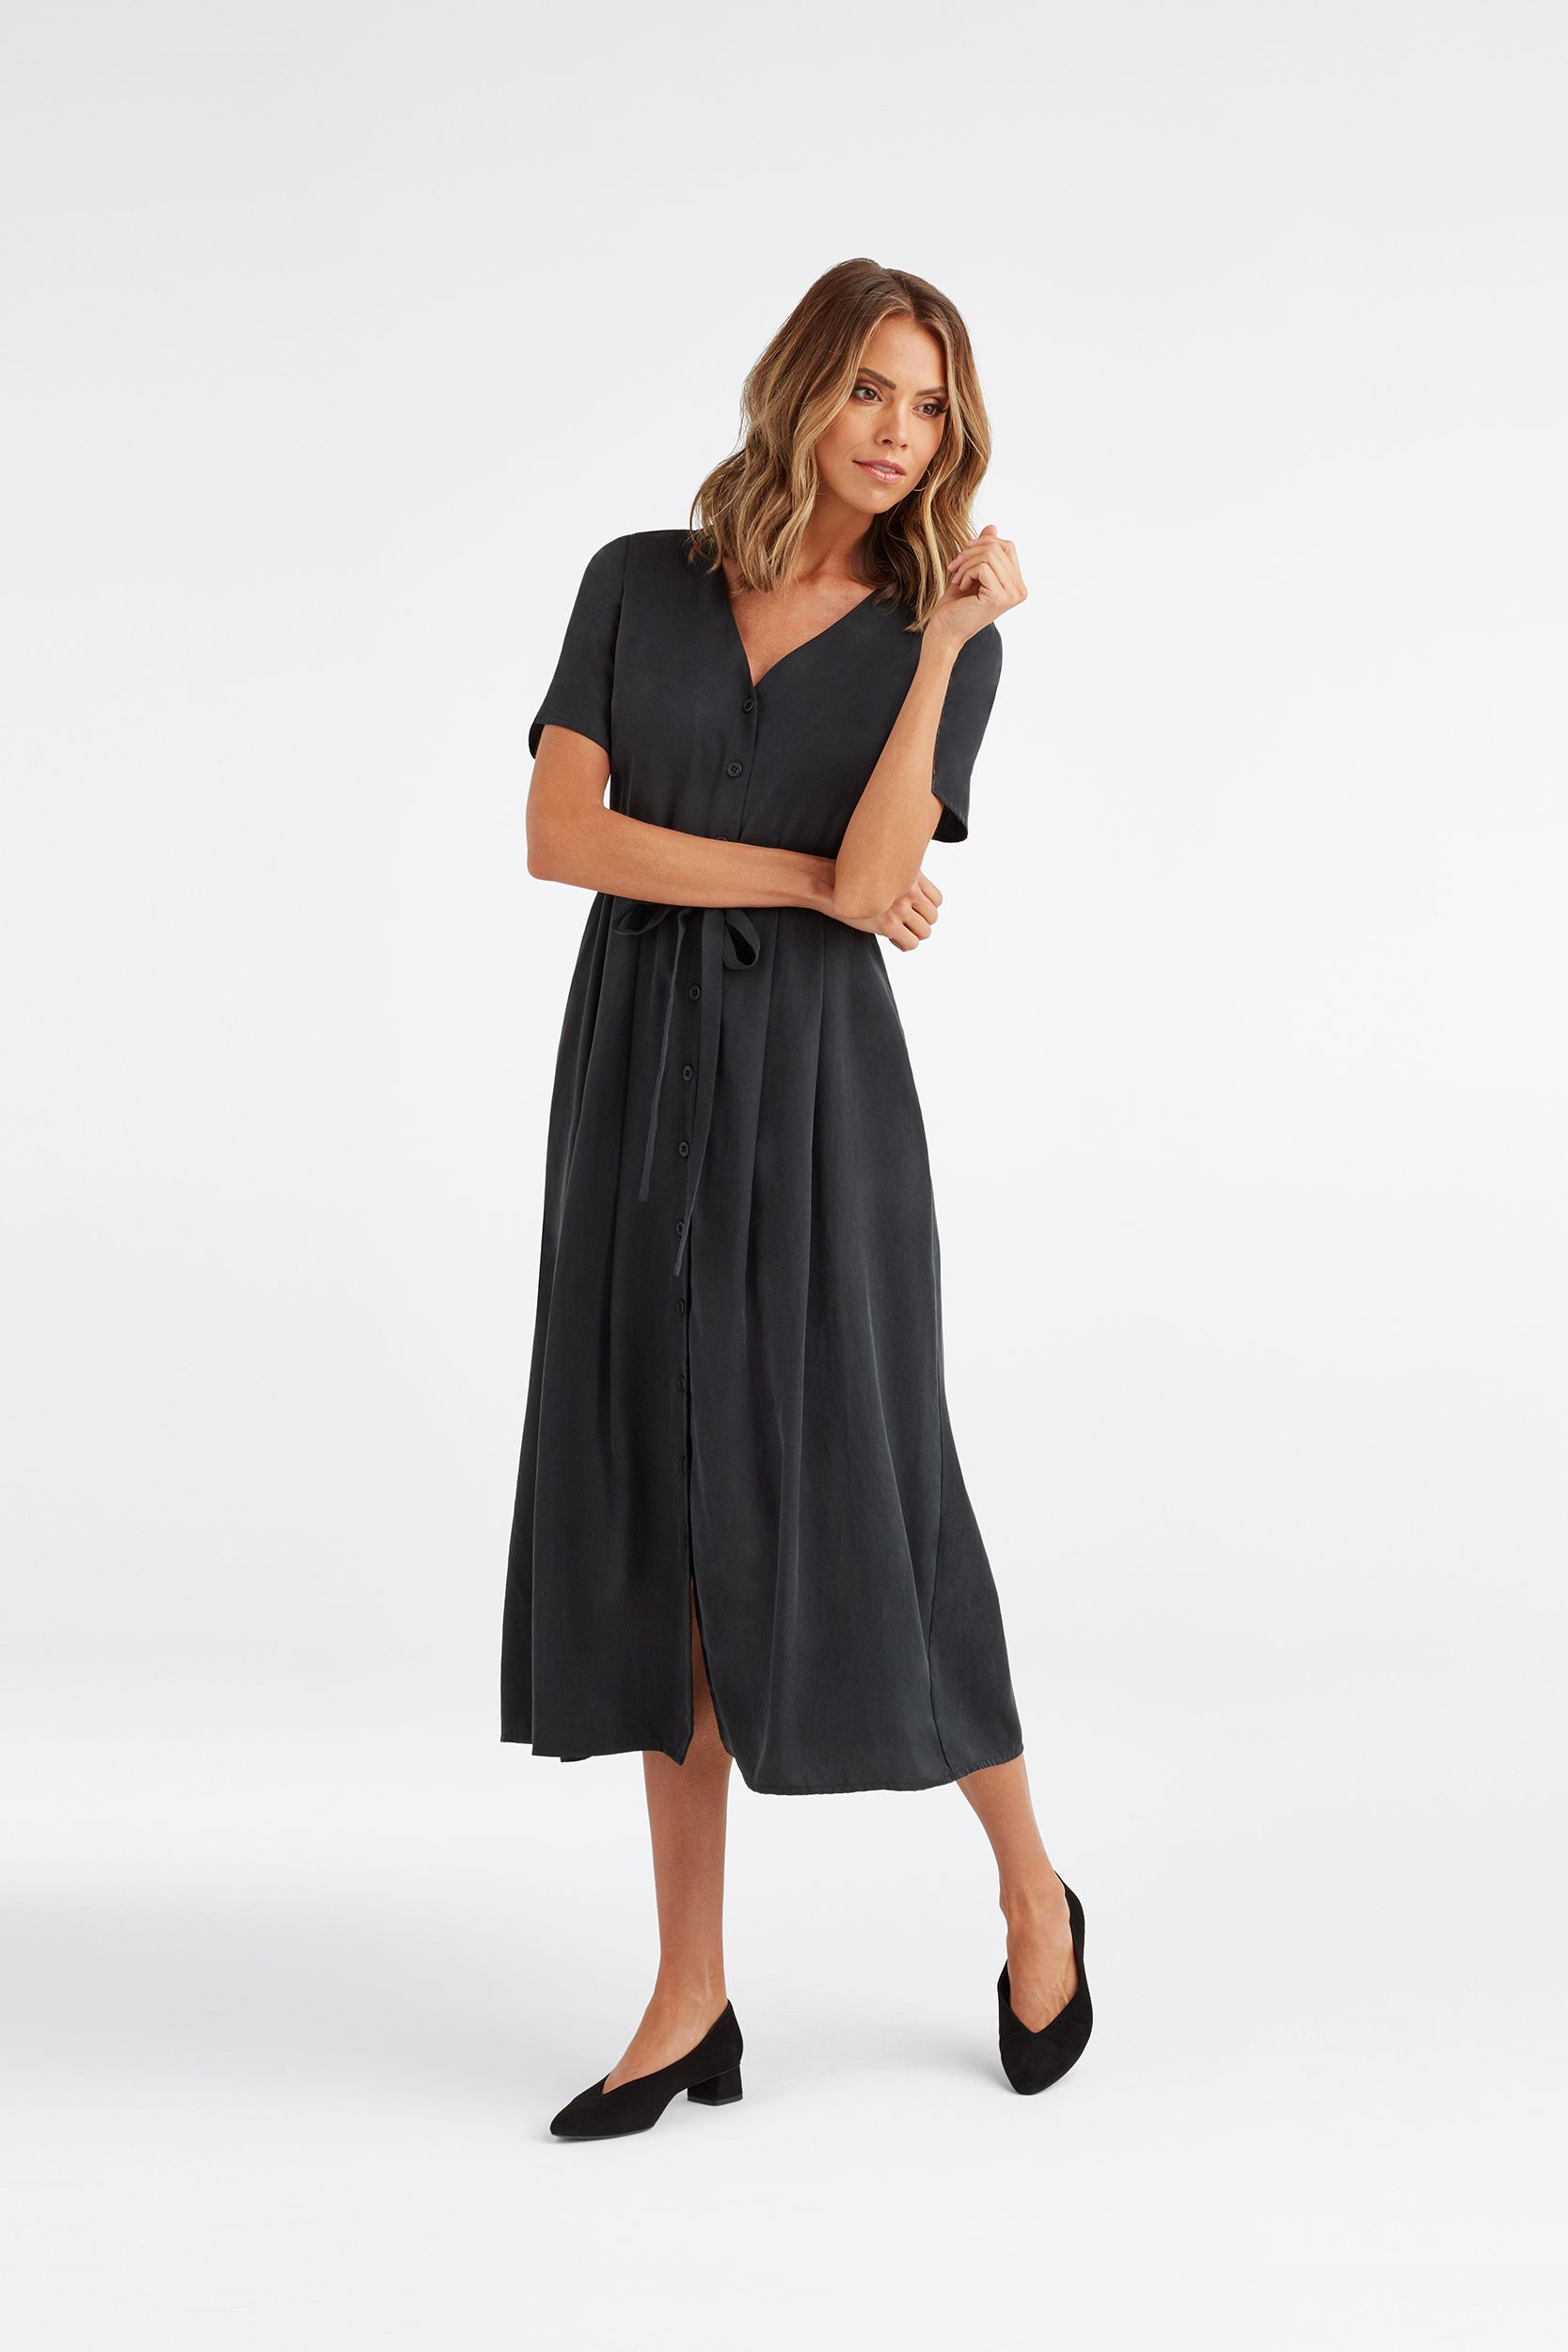 The Button Up Midi Dress Vetta Midi Dress Outfit Dresses Capsule Outfits [ 2500 x 1667 Pixel ]